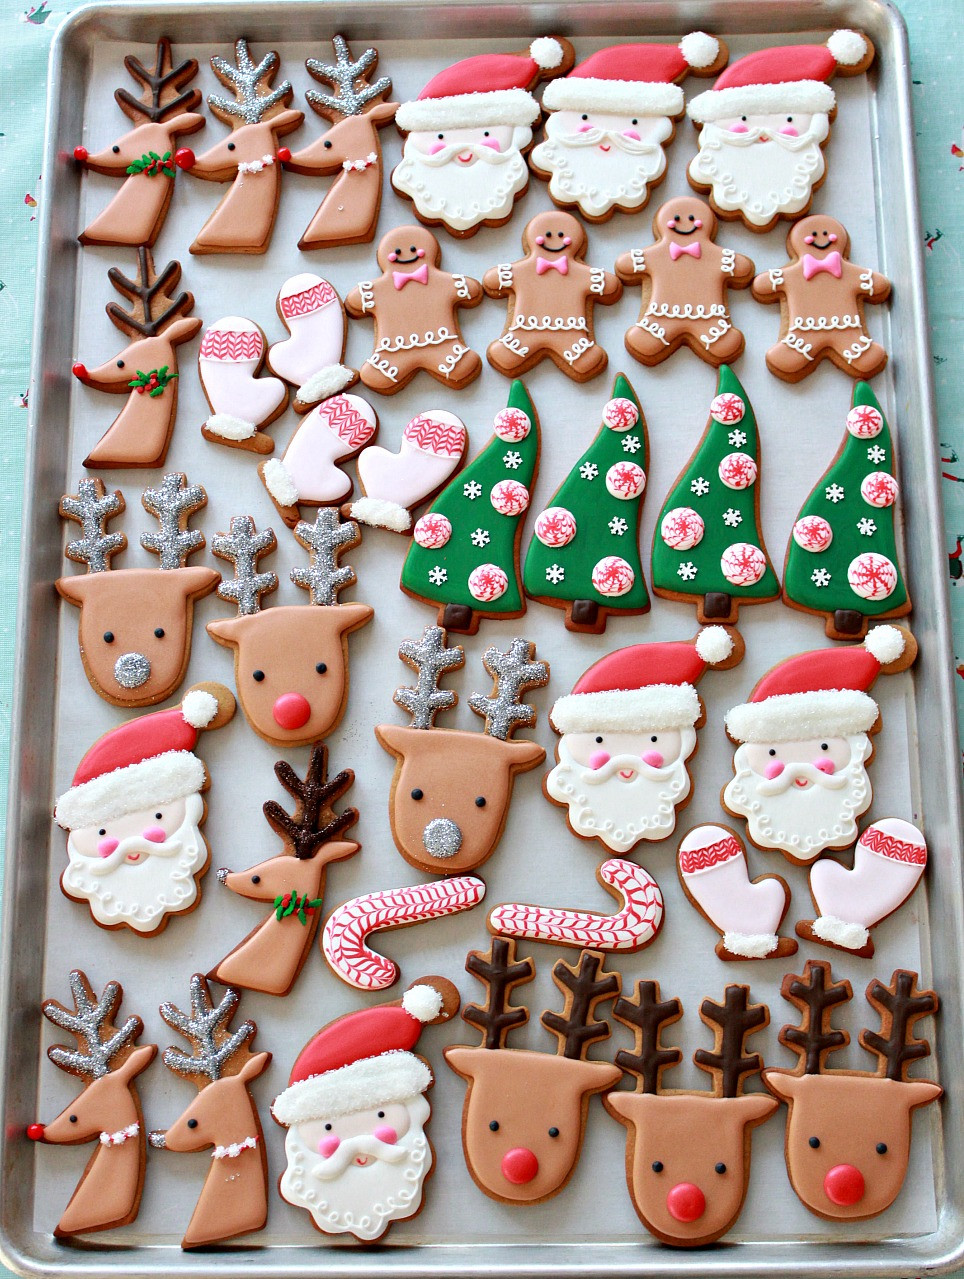 Pinterest Christmas Cookies  Video How to Decorate Christmas Cookies Simple Designs